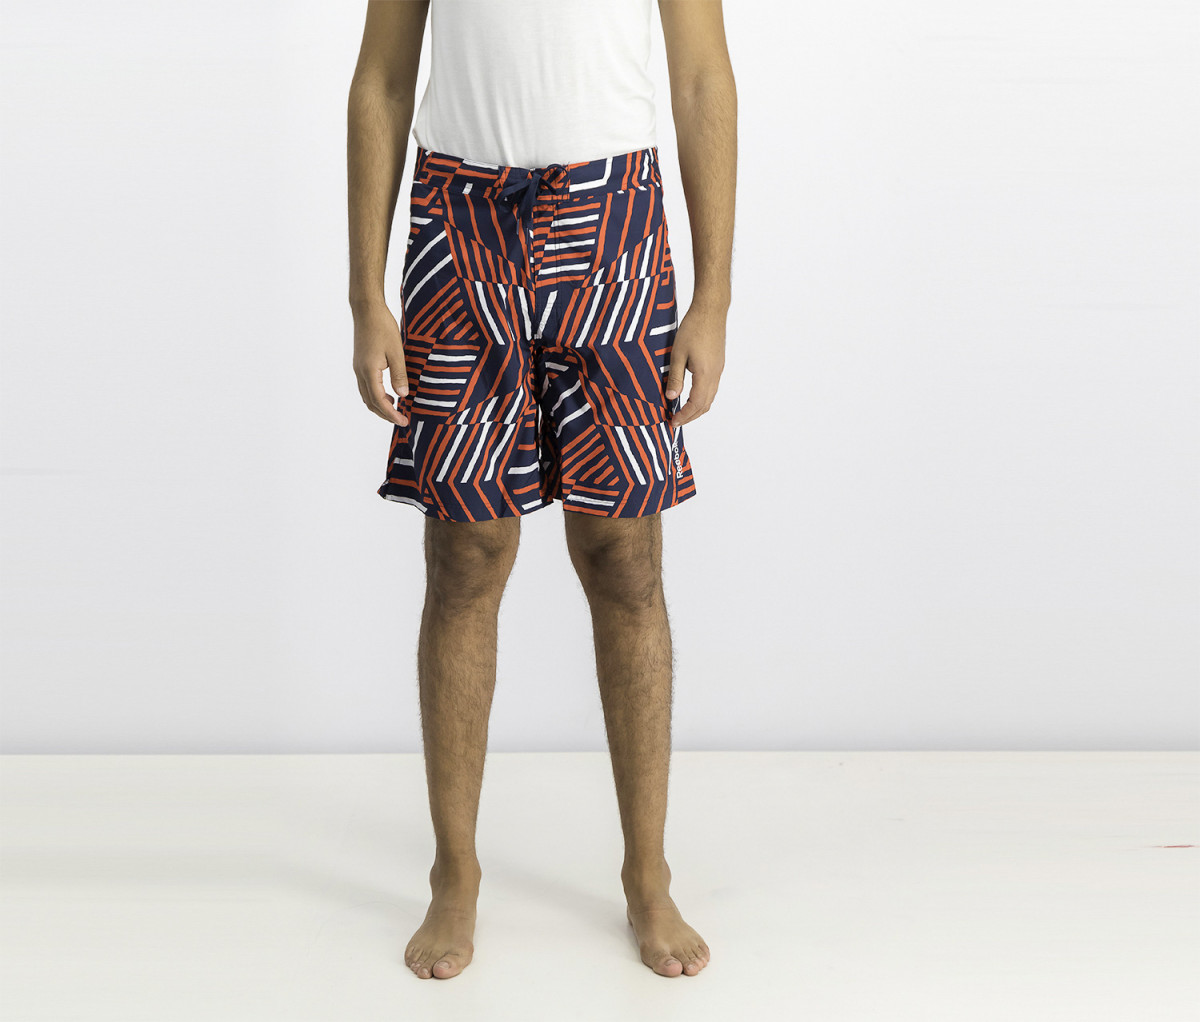 Reebok Mens Striped Boardshort  Red/Navy